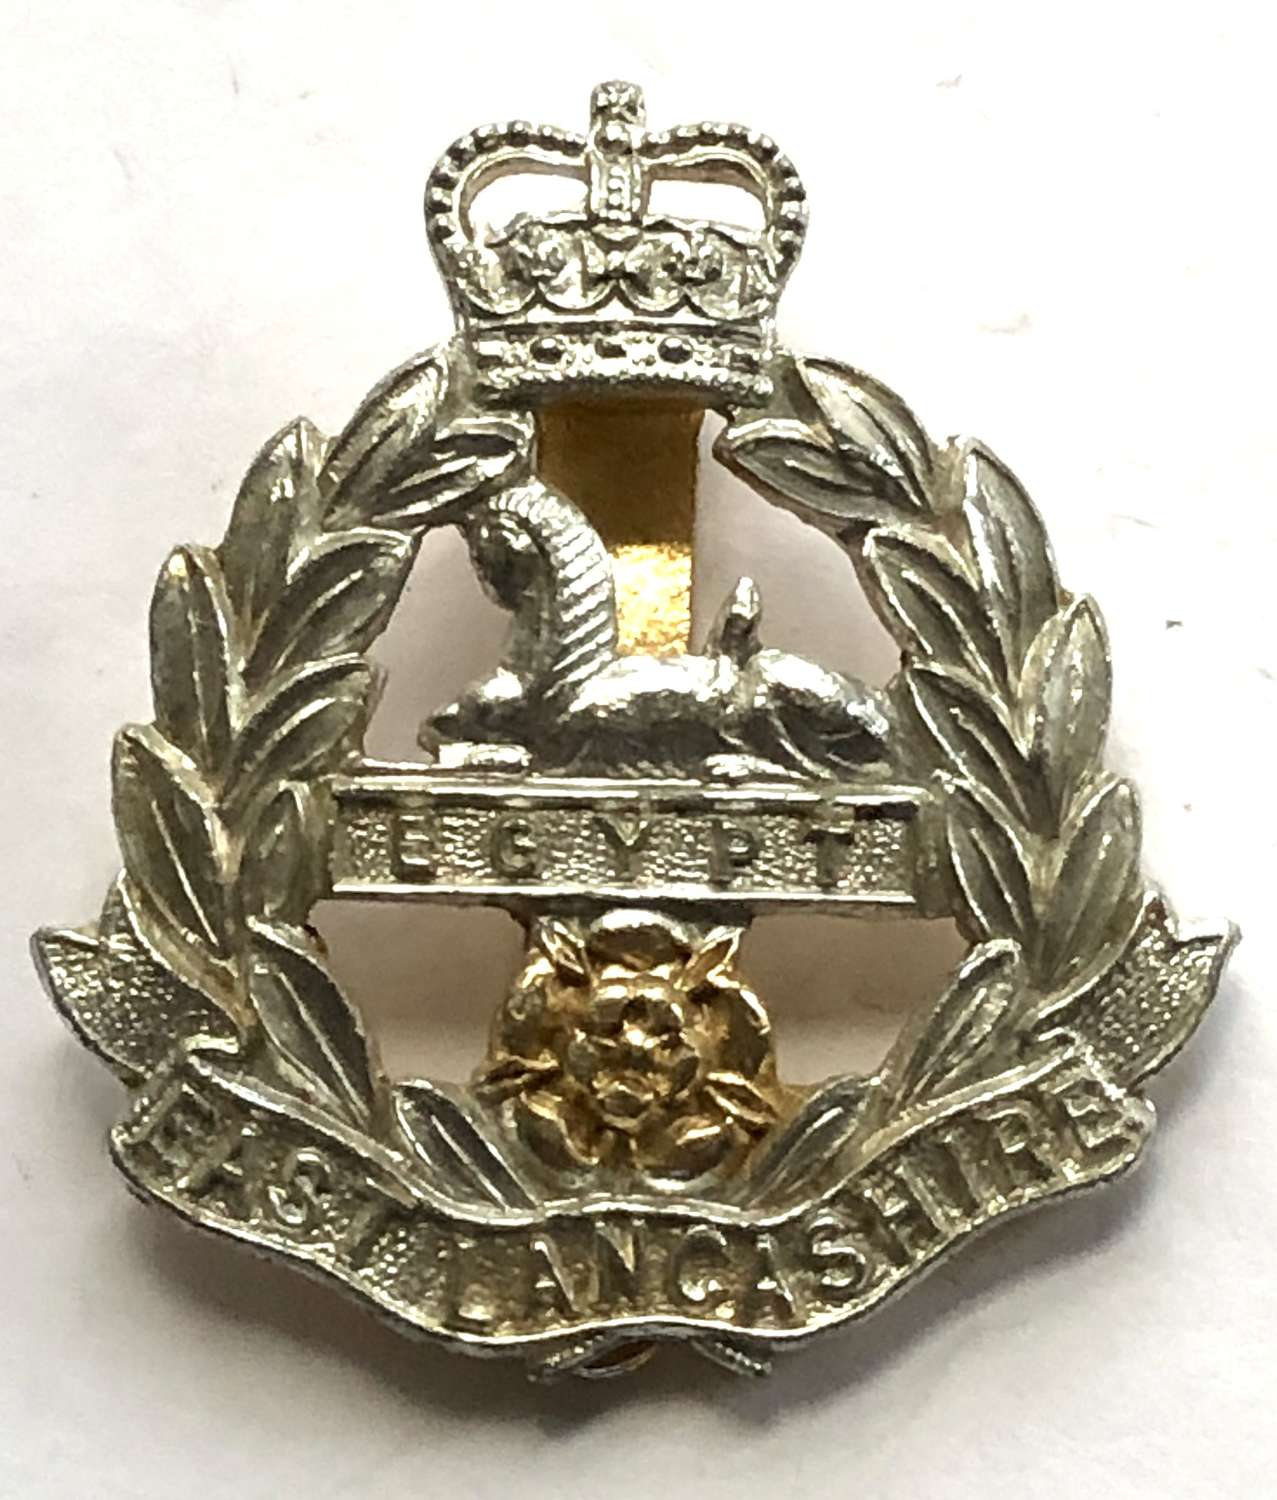 East Lancs Regiment anodised early 1960's cap badge by Smith & Wright